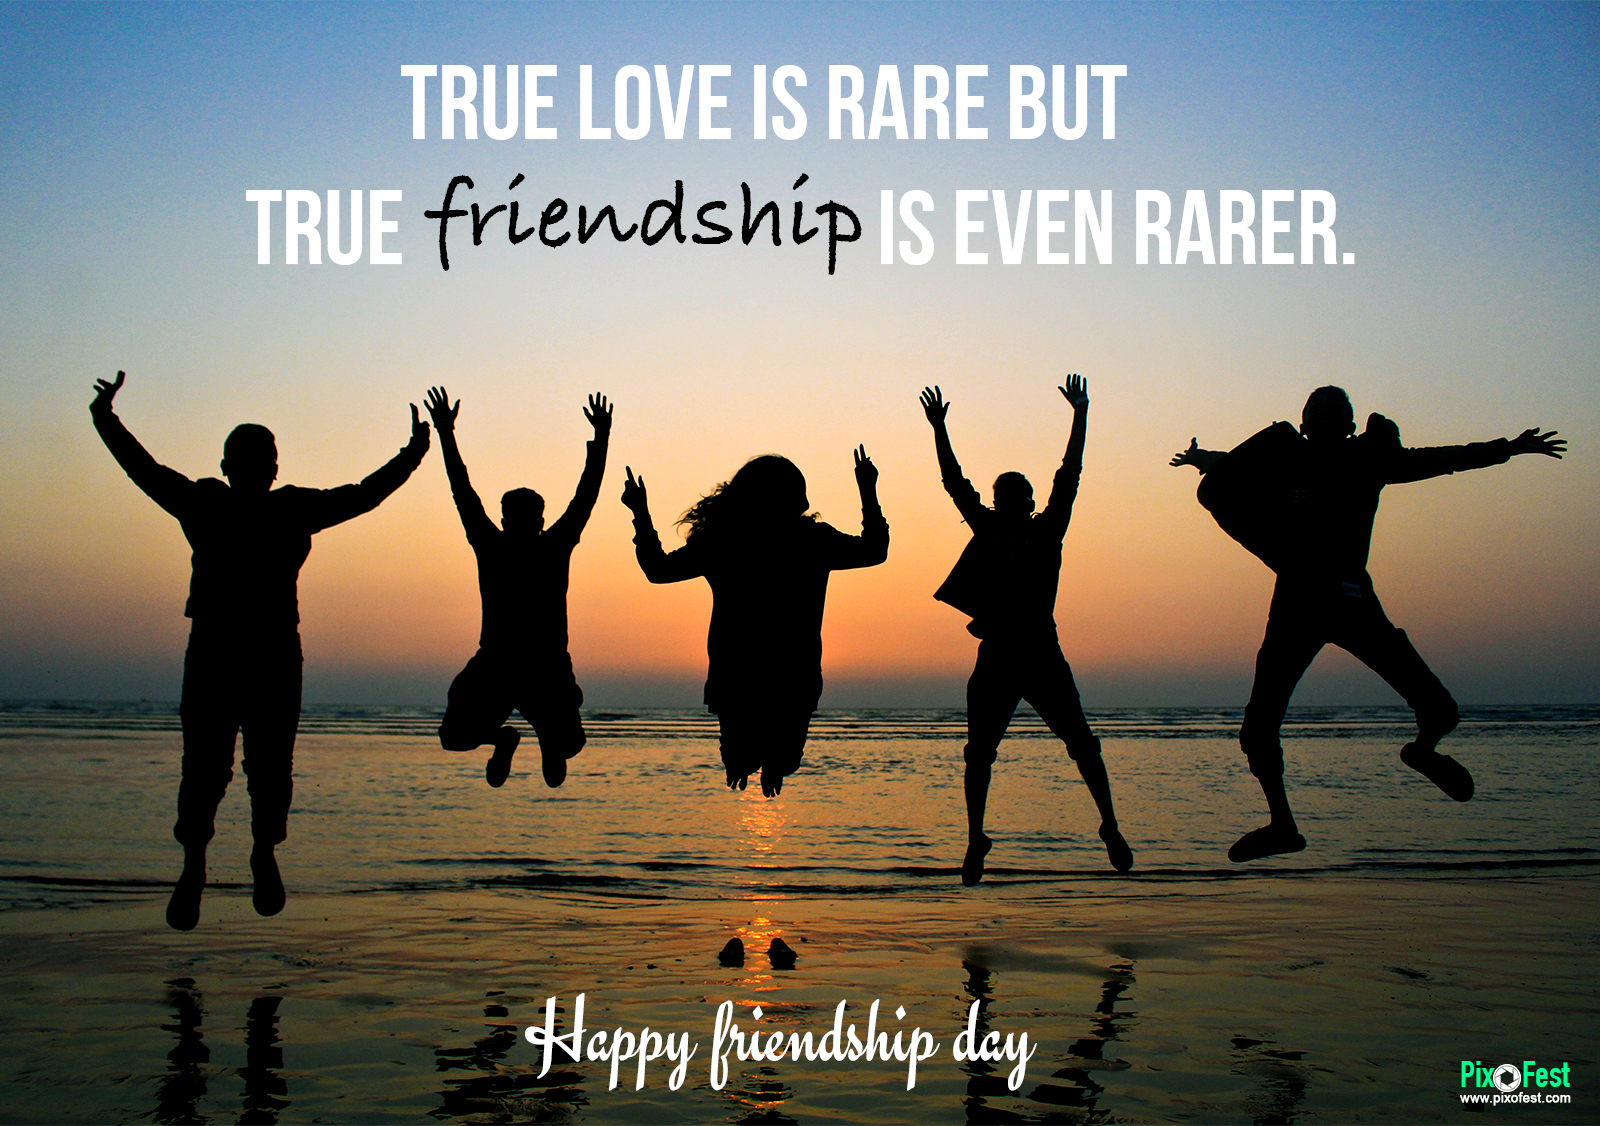 Friendship Day,happy friendship day,2019,2020,2021,friednds for ever